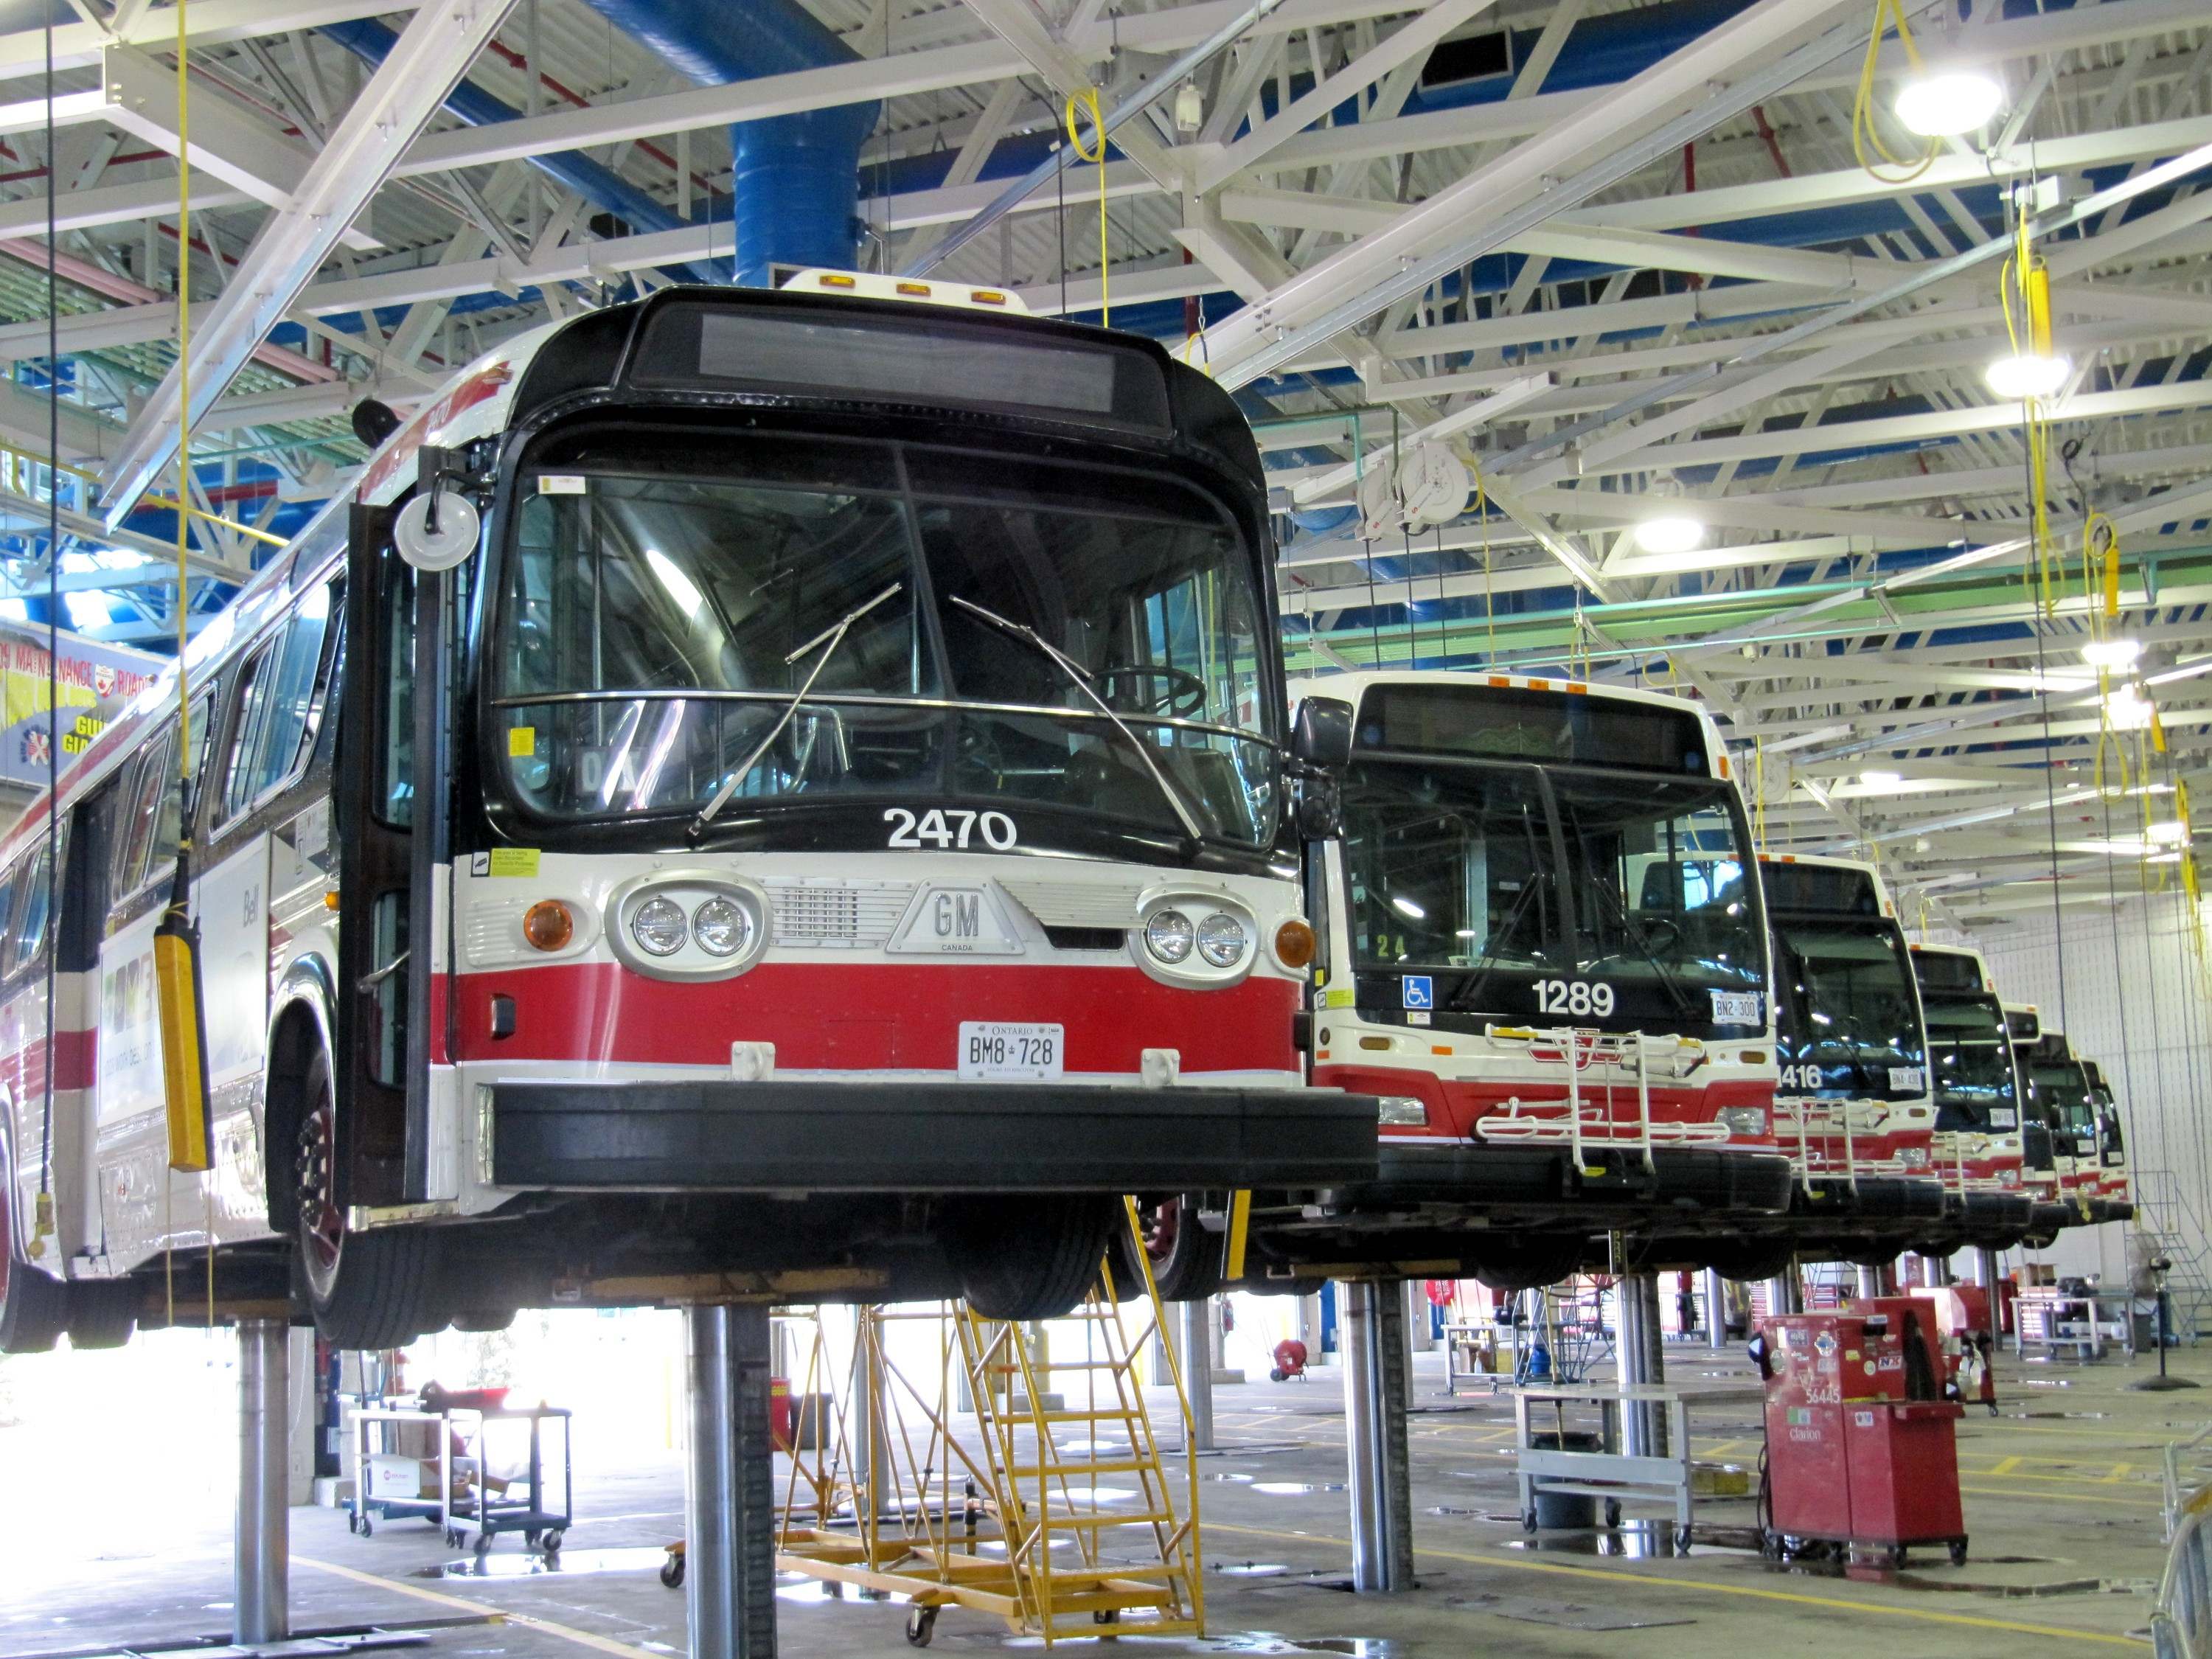 Buses on lifts in maintenance garage